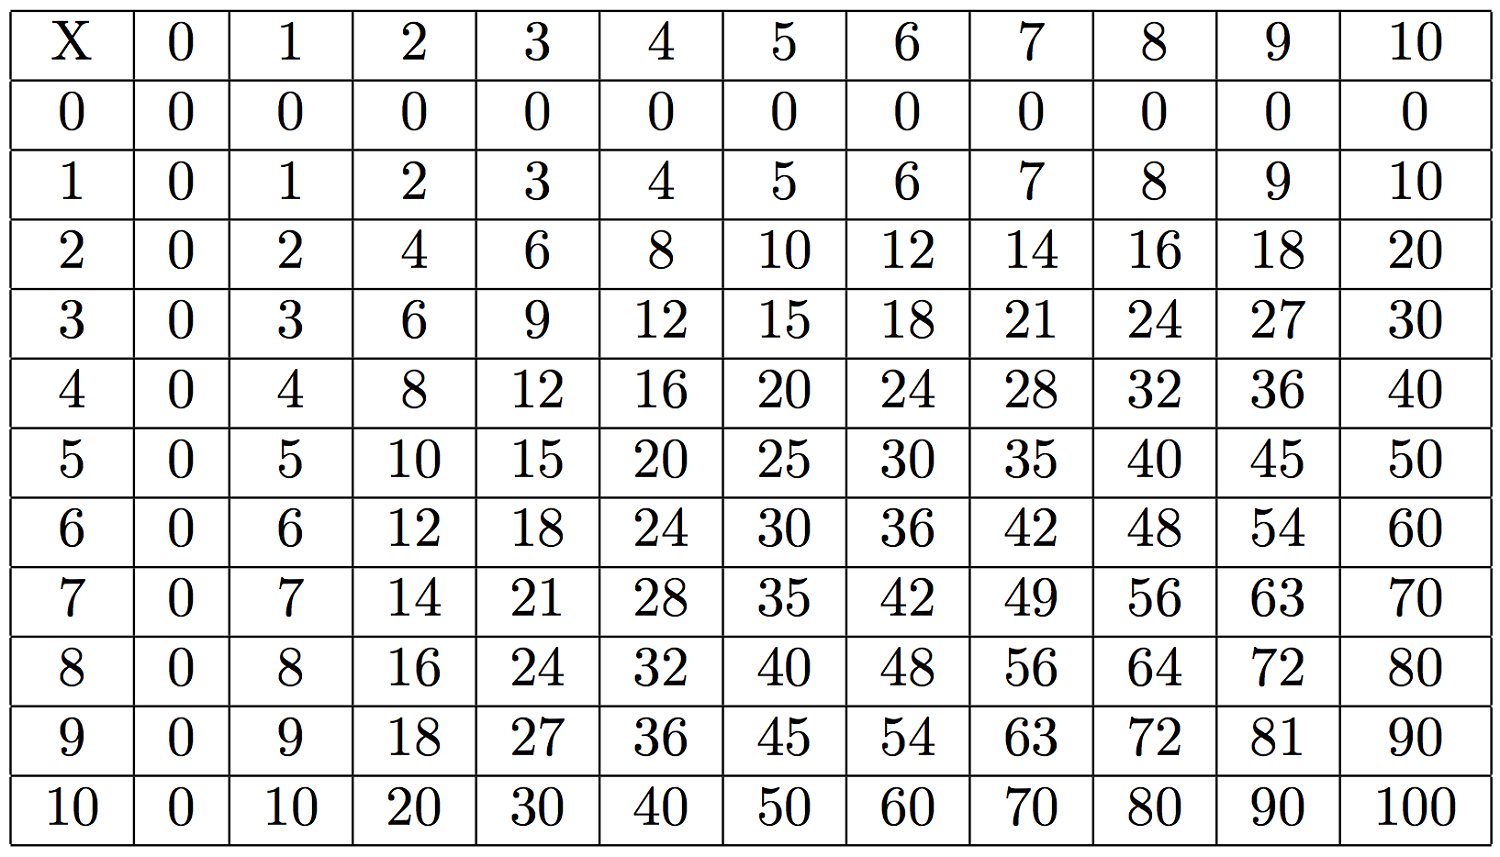 Large Multiplication Table To Train Memory | Activity Shelter